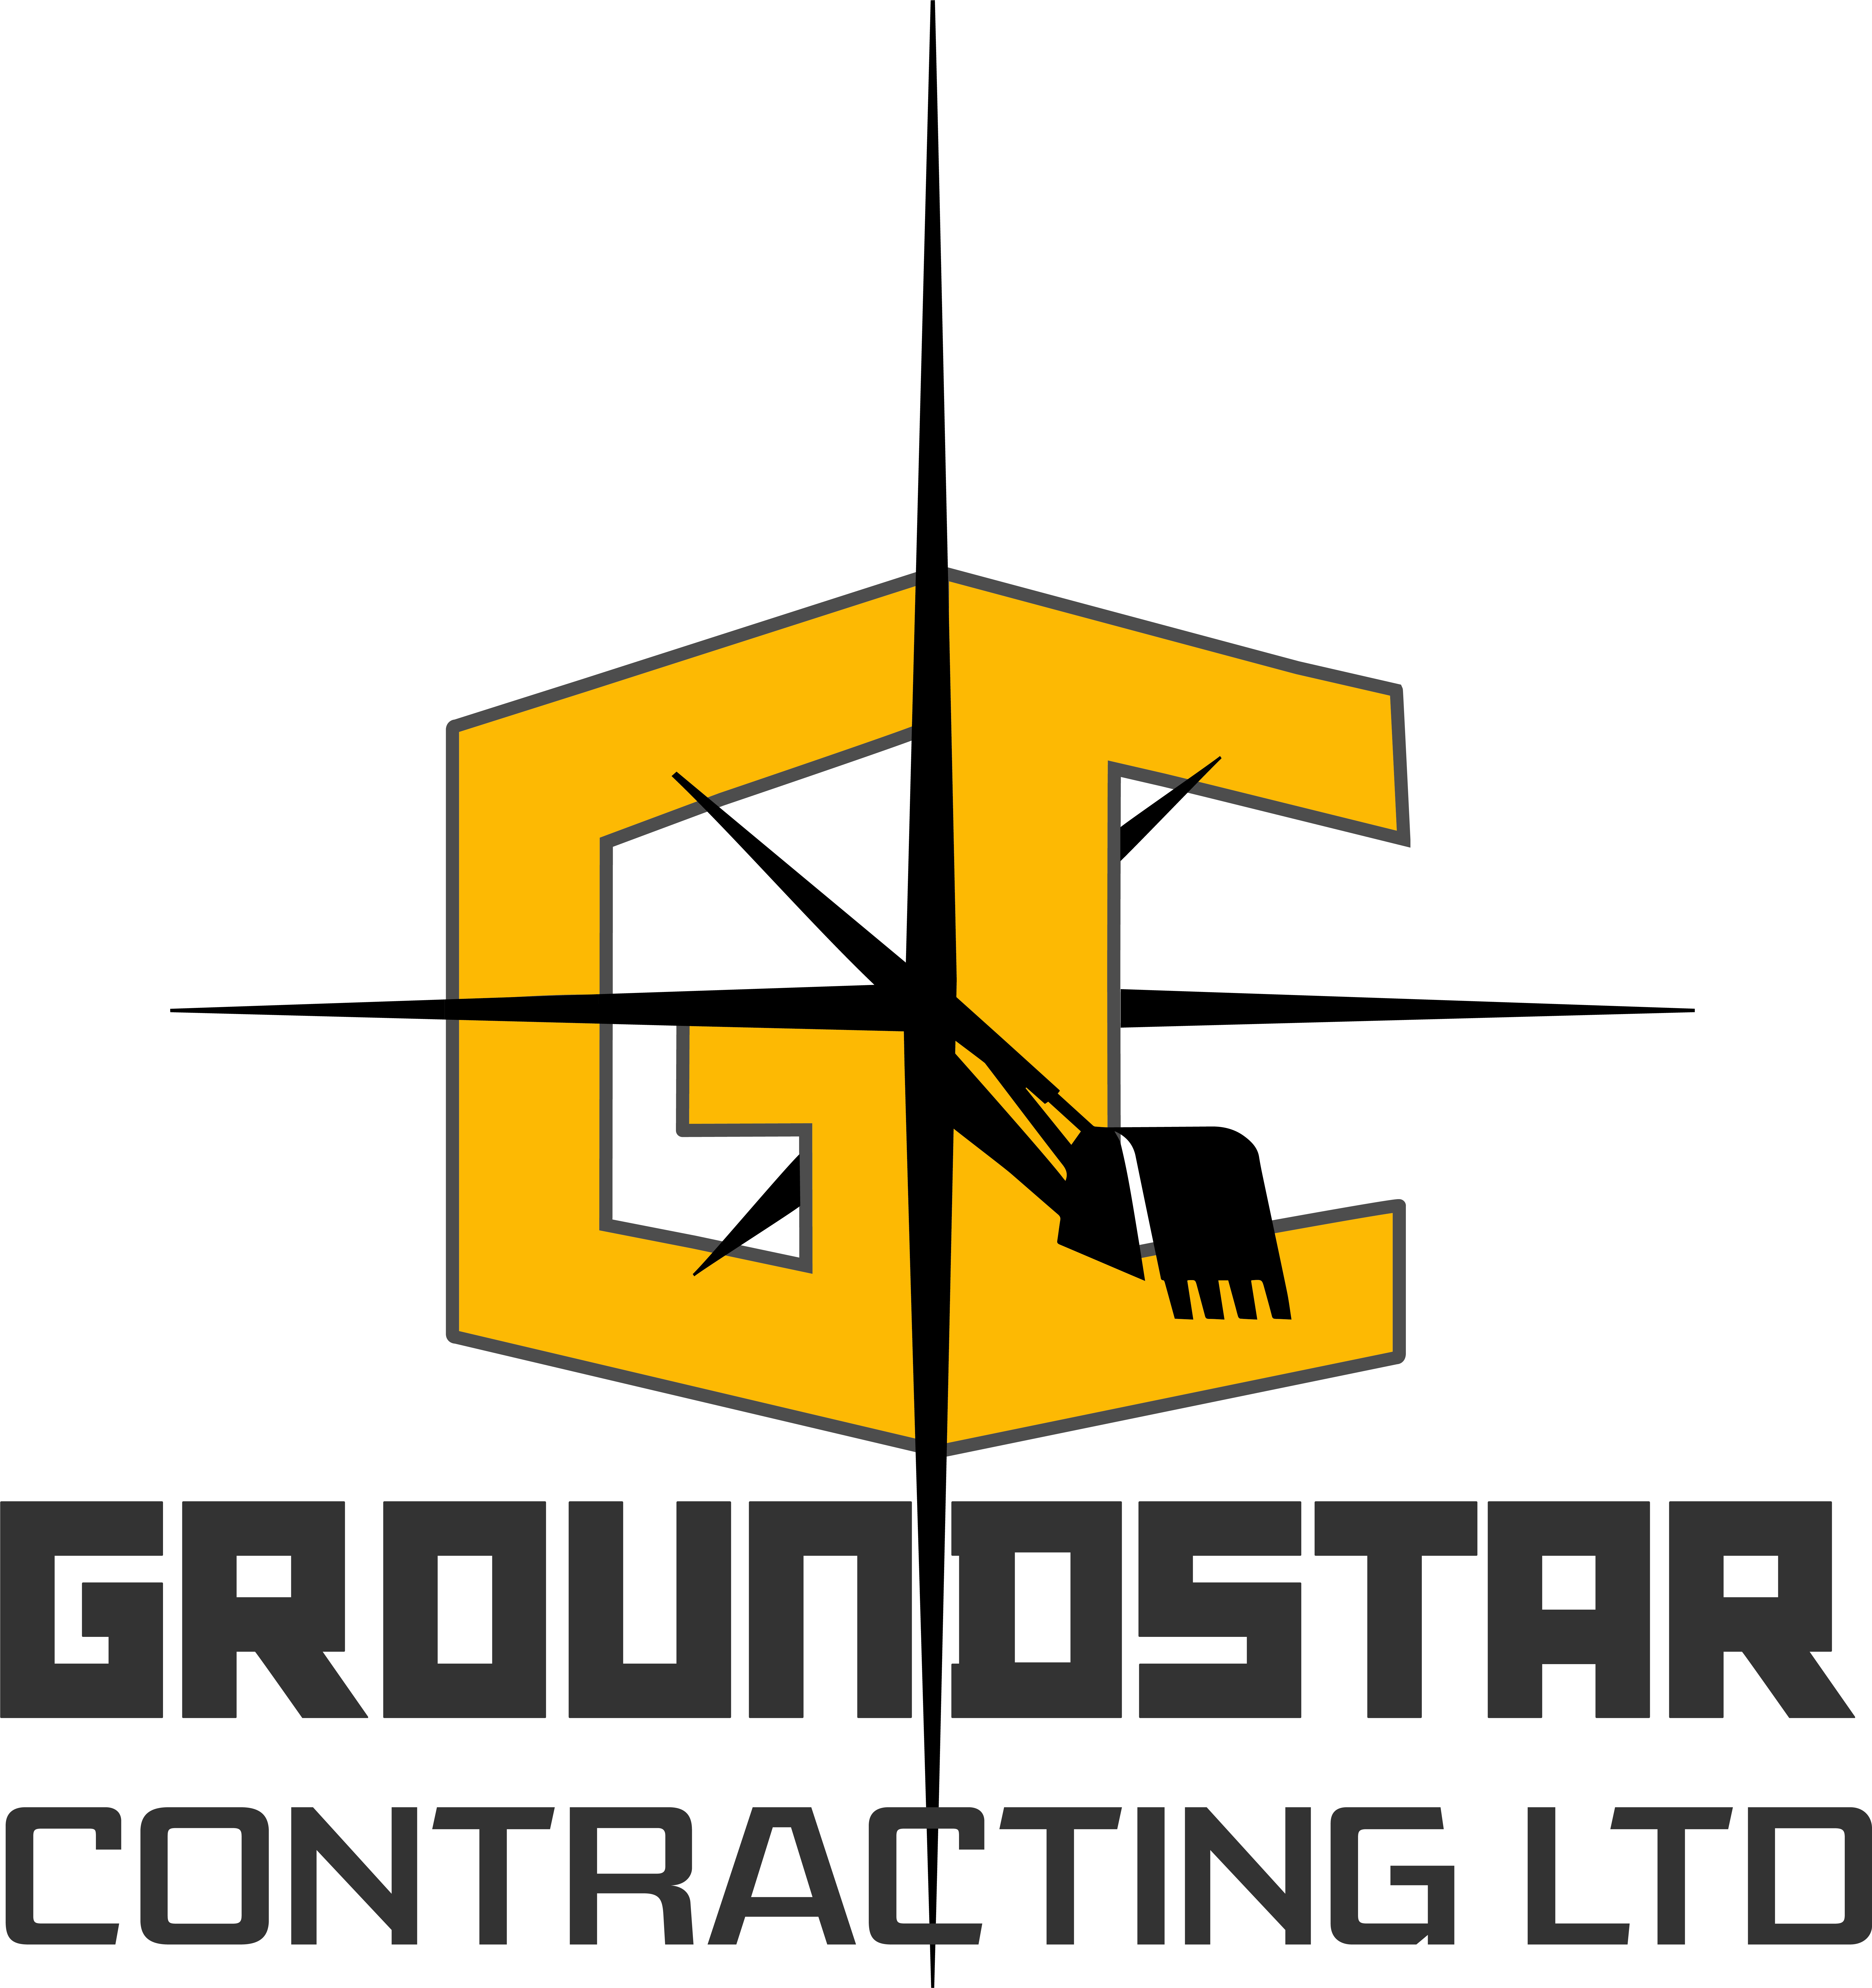 Groundstar Contracting Ltd.